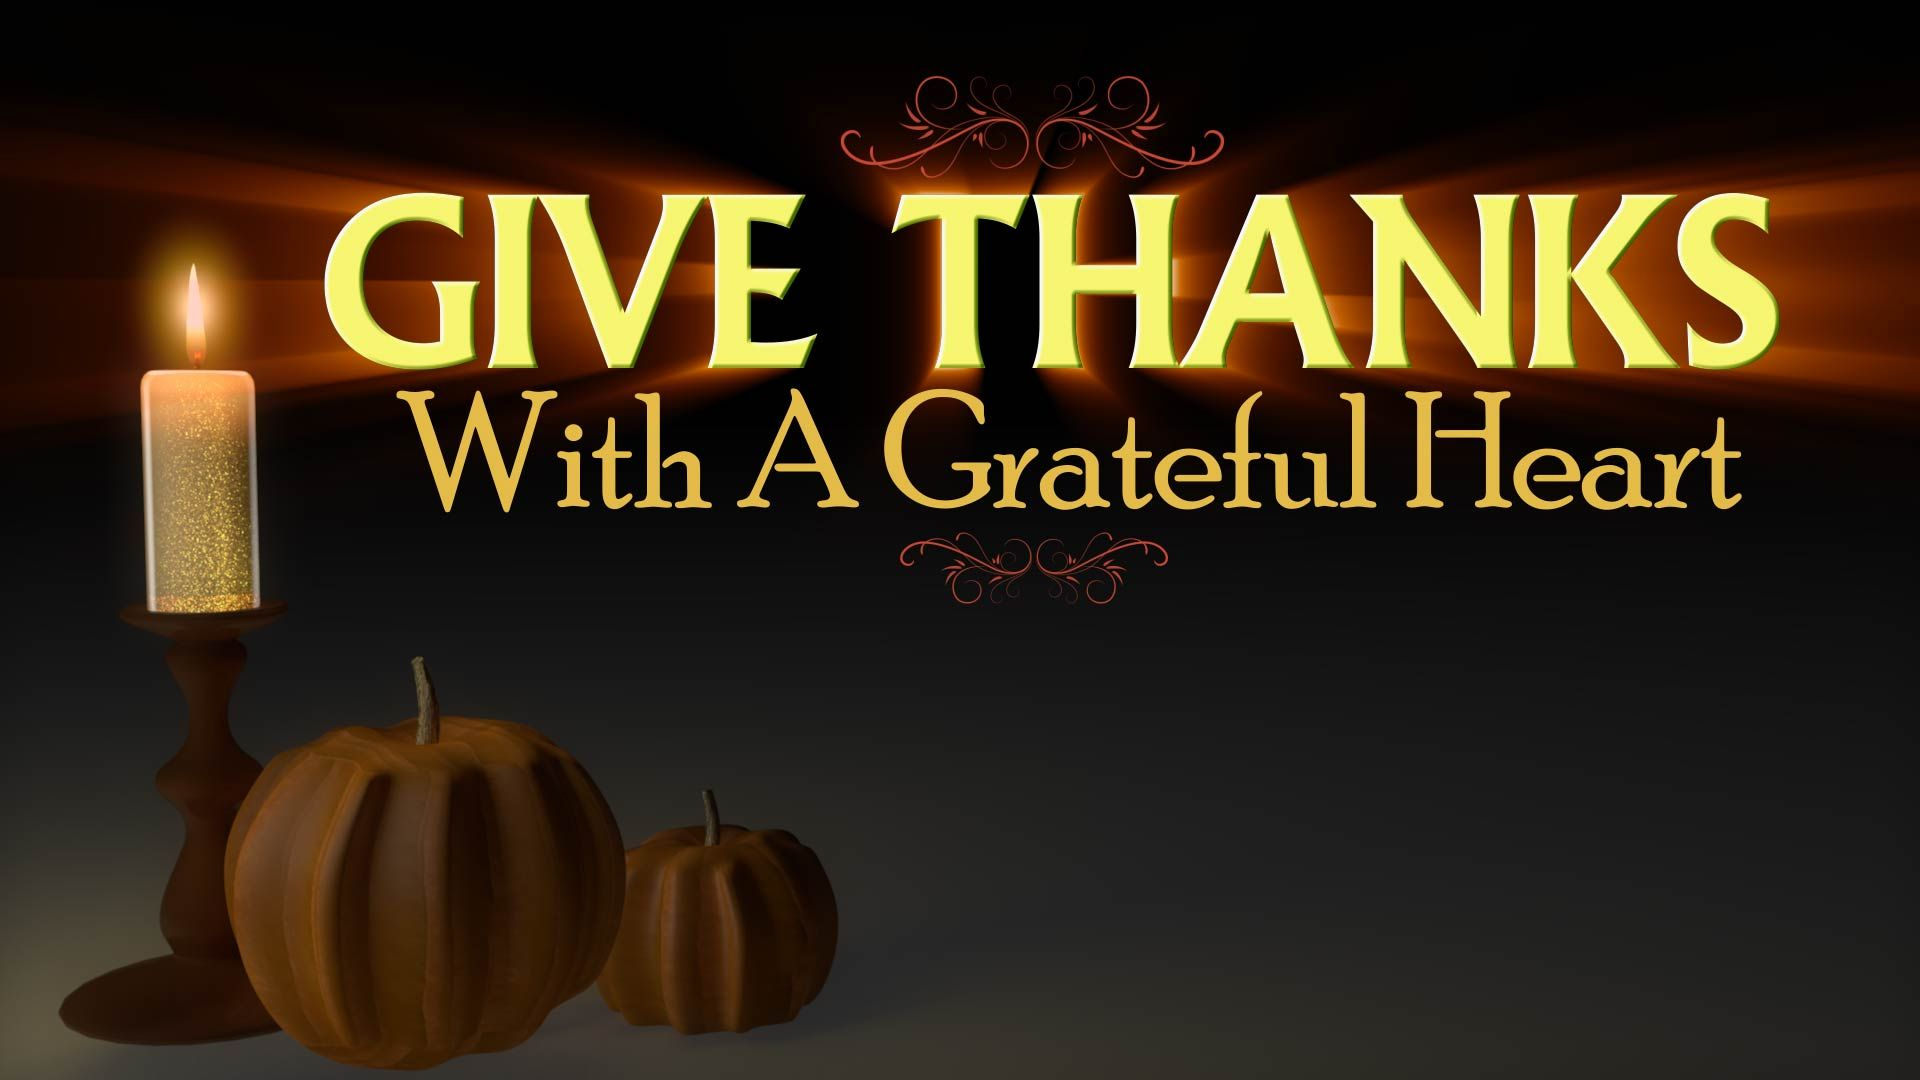 This Thanksgiving Give Thanks With A Grateful Heart With Our Video